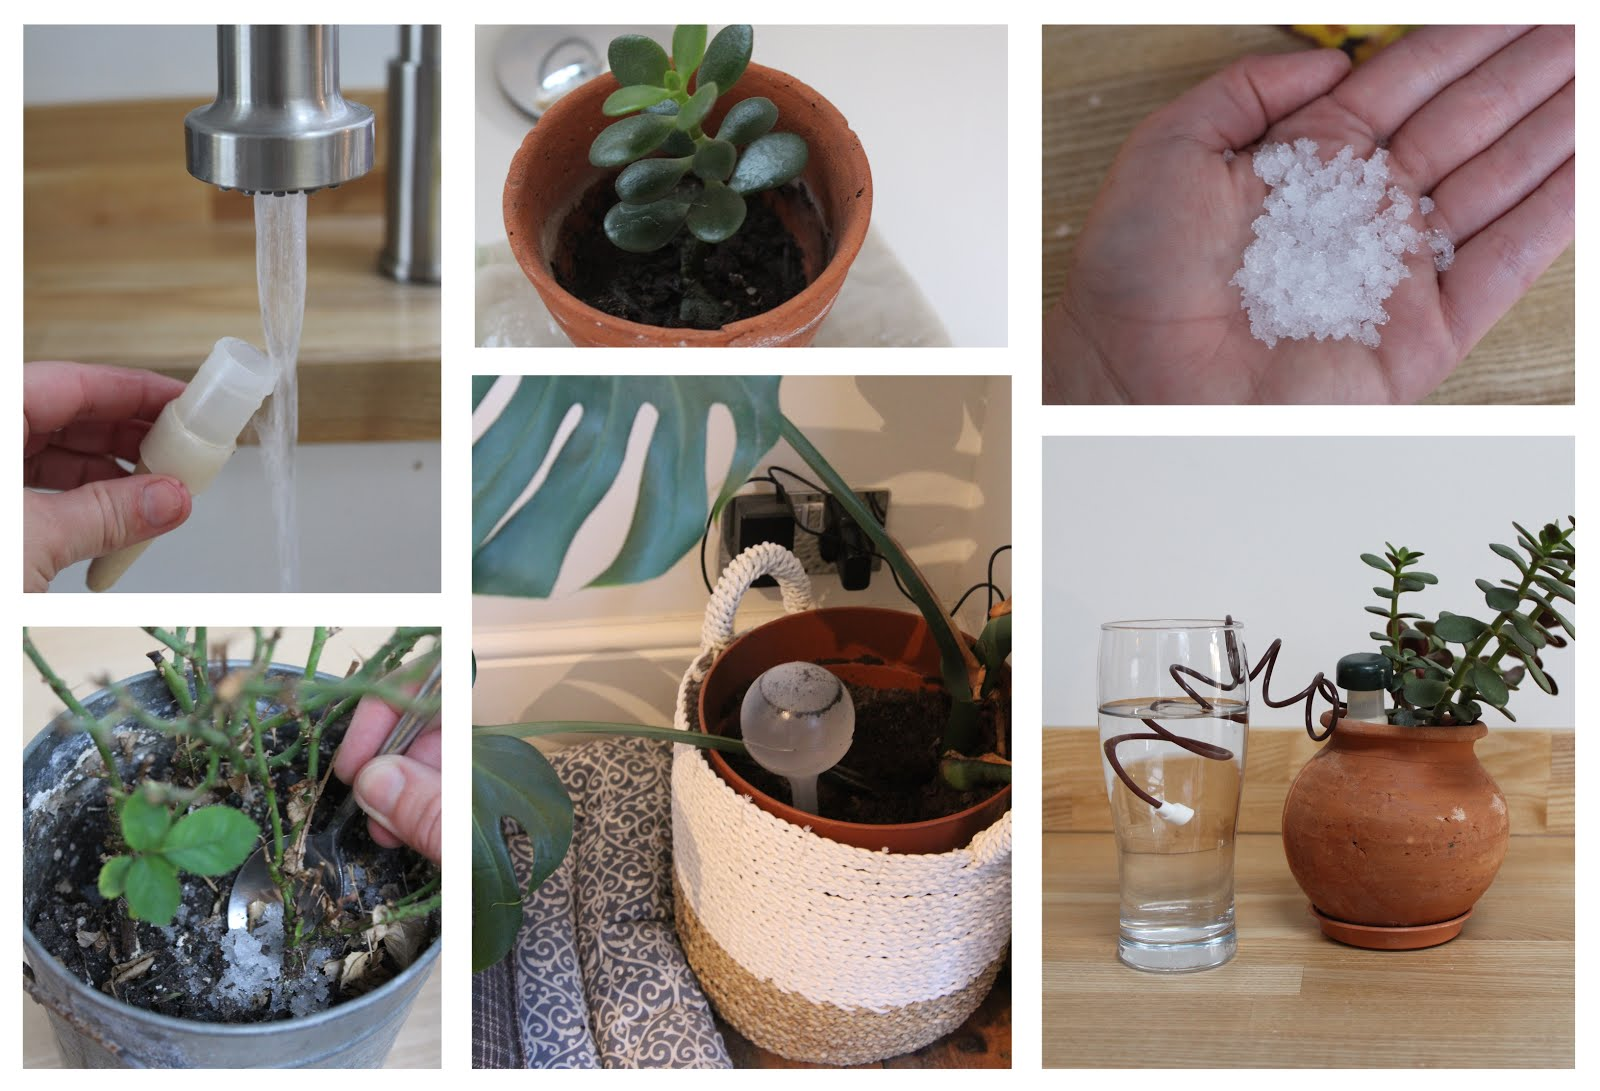 How to Keep House Plants Watered When You're Away